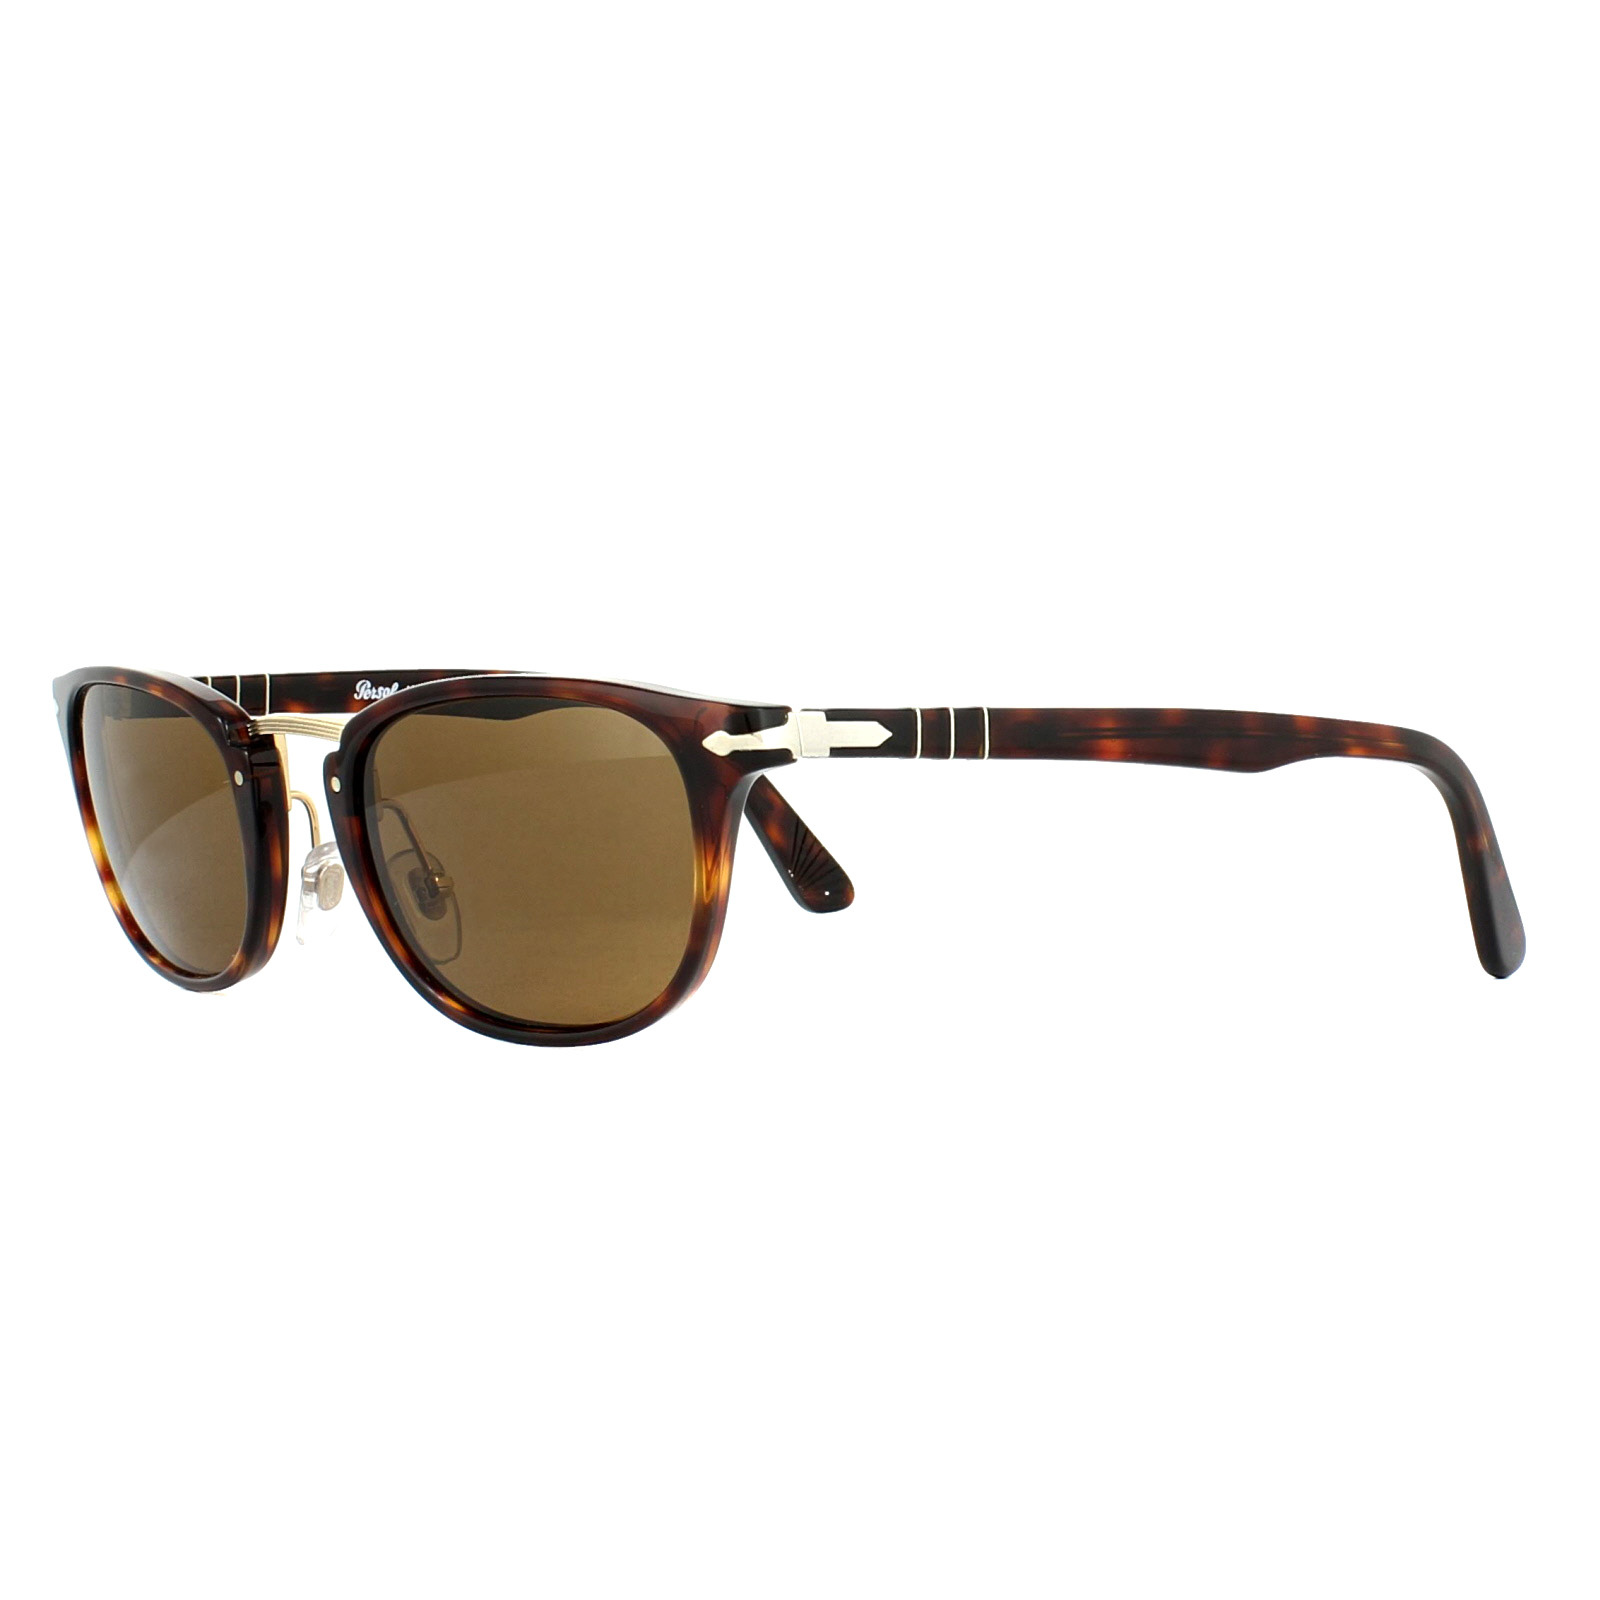 e7cb1ac28756d Persol Sunglasses 3127S 24 57 Havana Brown Polarized 8053672472769 ...